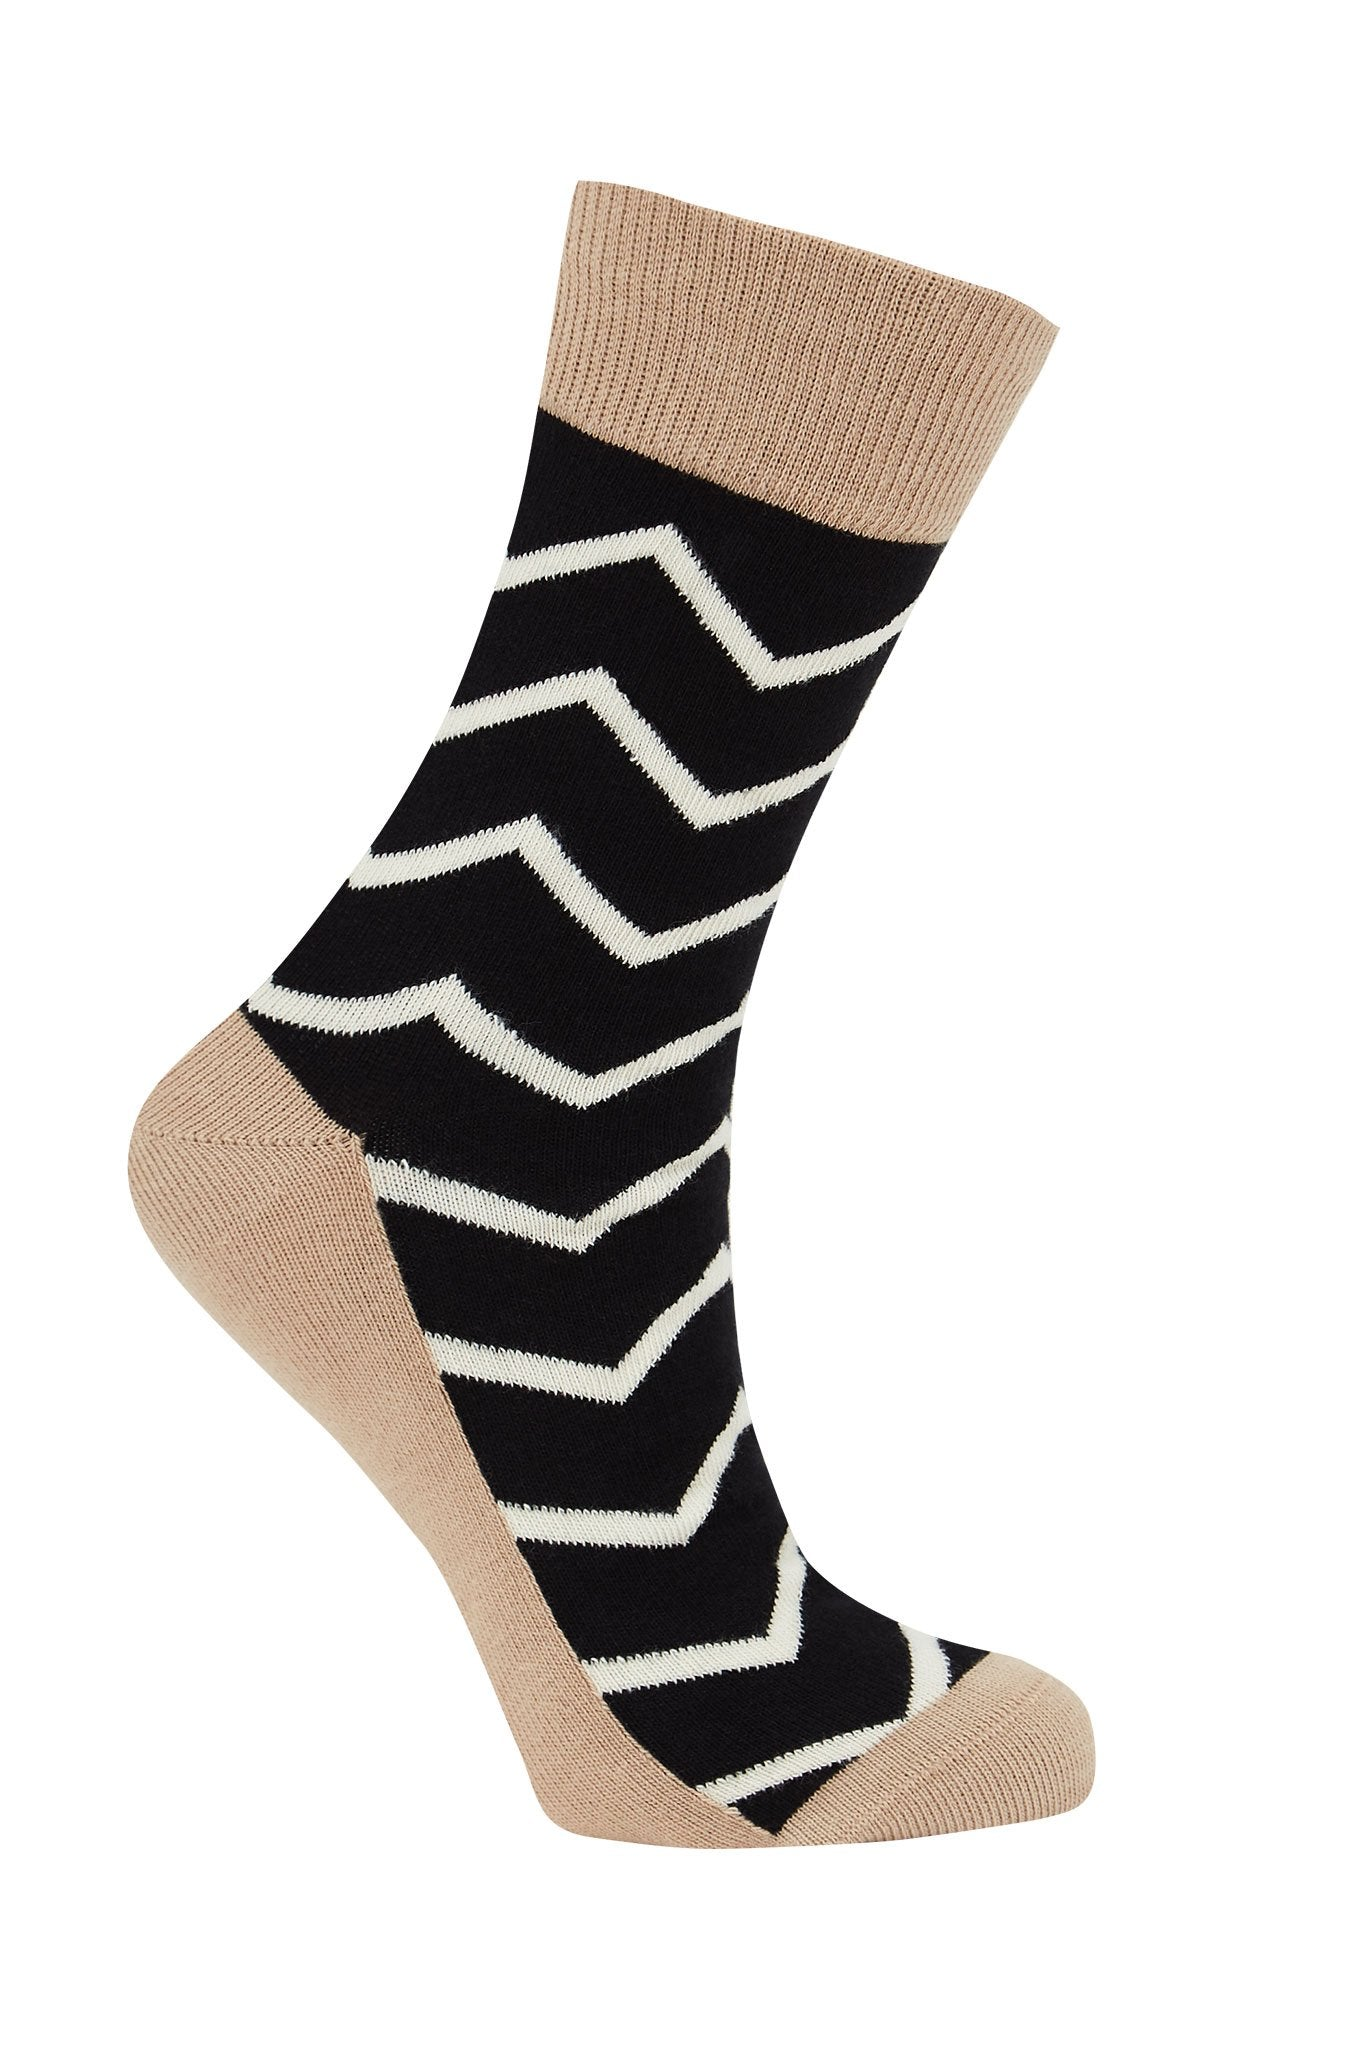 SAPUT Black - GOTS Organic Cotton Socks